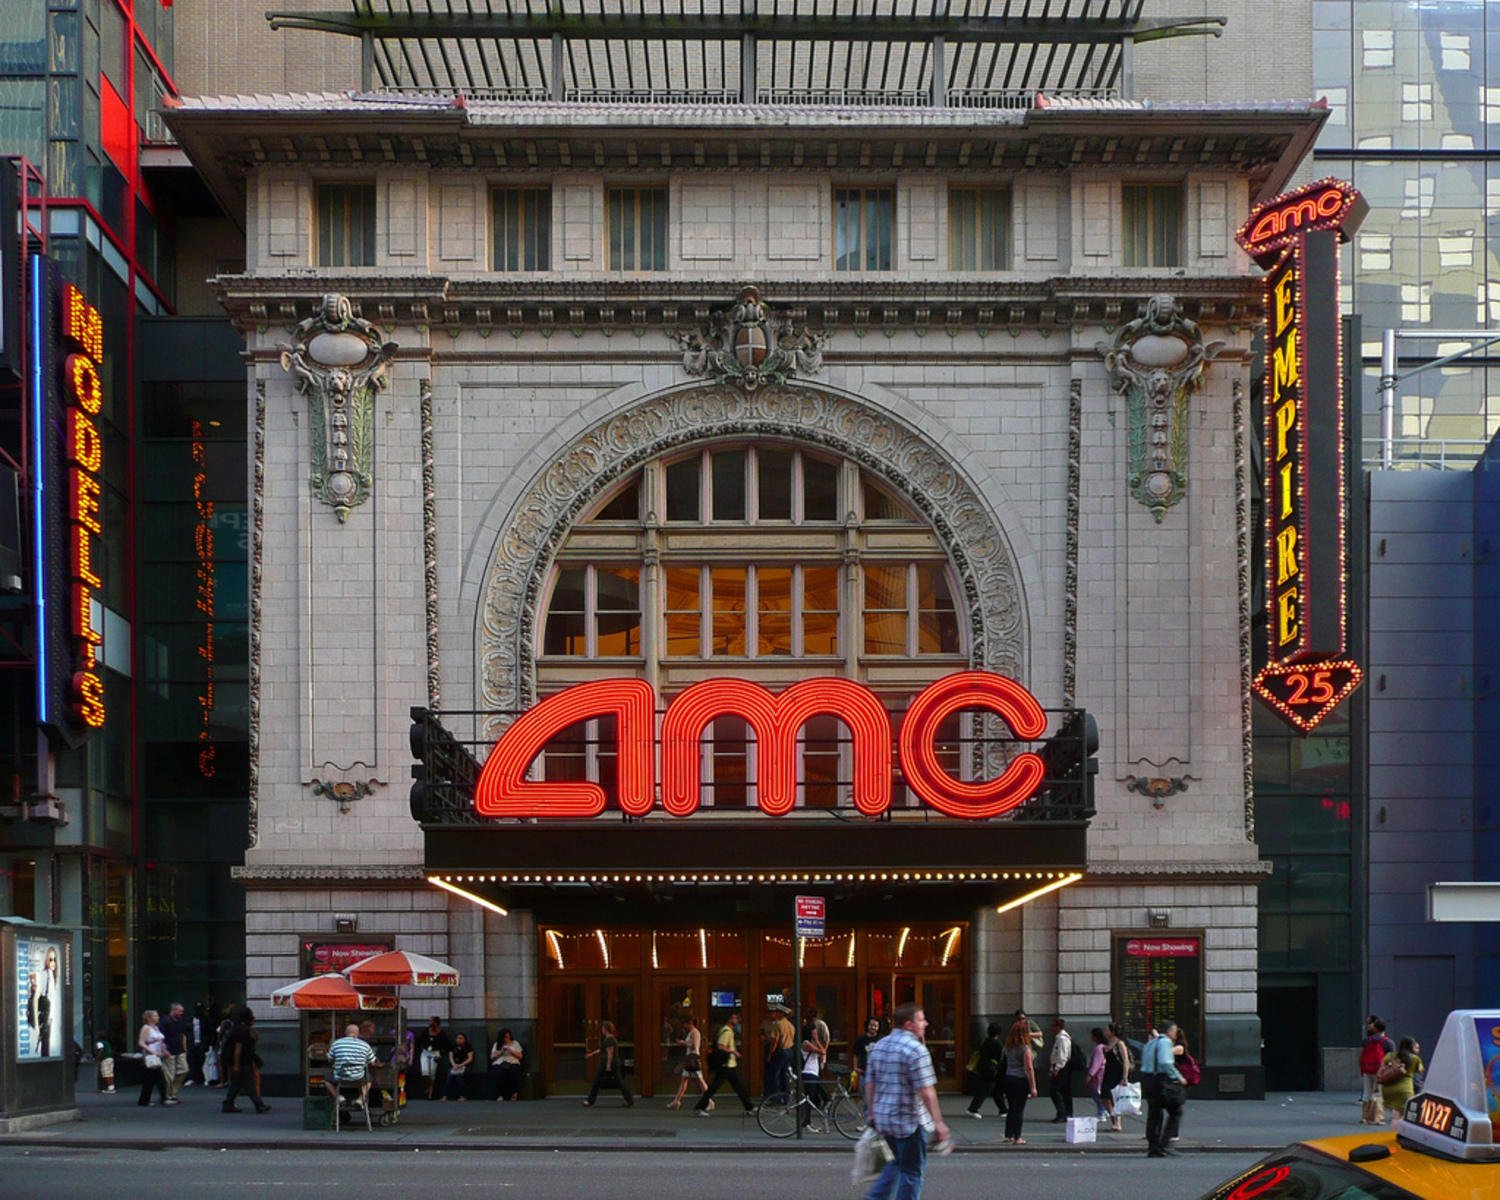 "AMC | The Empire Theatre was designed by architect Thomas W. Lamb and opened in 1912 as the Eltinge 42nd Street Theater. Here's a historic view: <a href=""http://www.flickr.com/photos/woody1969/5068941189/"">www.flickr.com/photos/woody1969/5068941189/</a> It was converted into a movie theater in 1942 and renamed the Laff and then was renamed the Empire in 1954 and finally closed in the 1980s. It reemerged as a 25-screen megaplex run by AMC which opened in 2001. Interesting the entire theater was moved 200 feet to allow for the construction of the new AMC movie theaters."